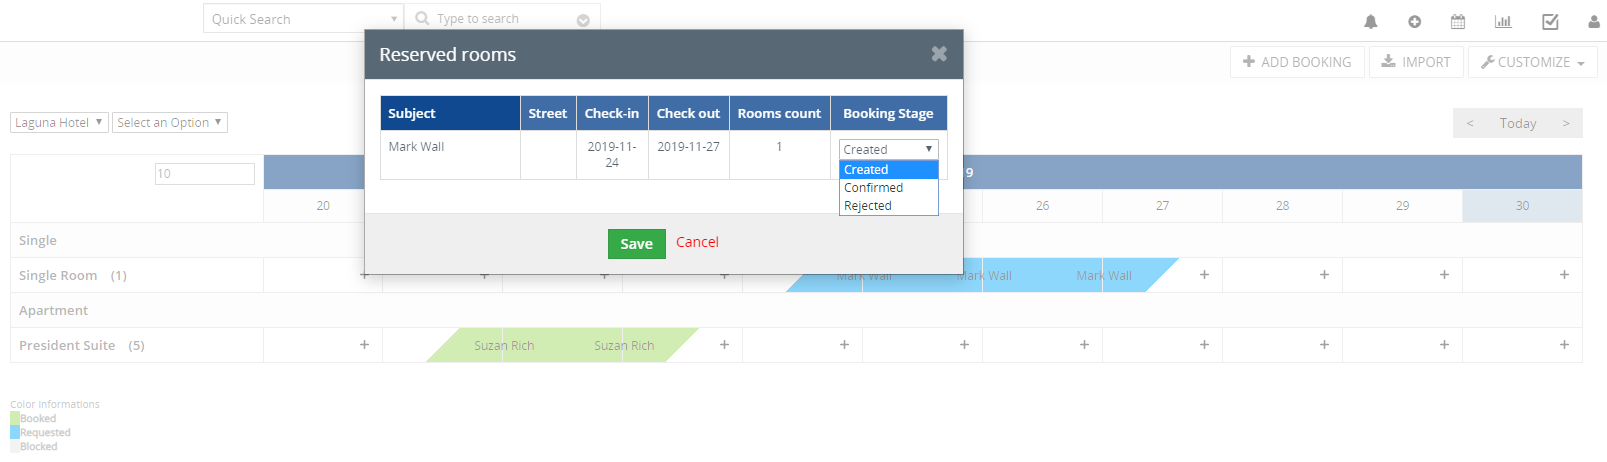 Change reserved rooms booking stage easily